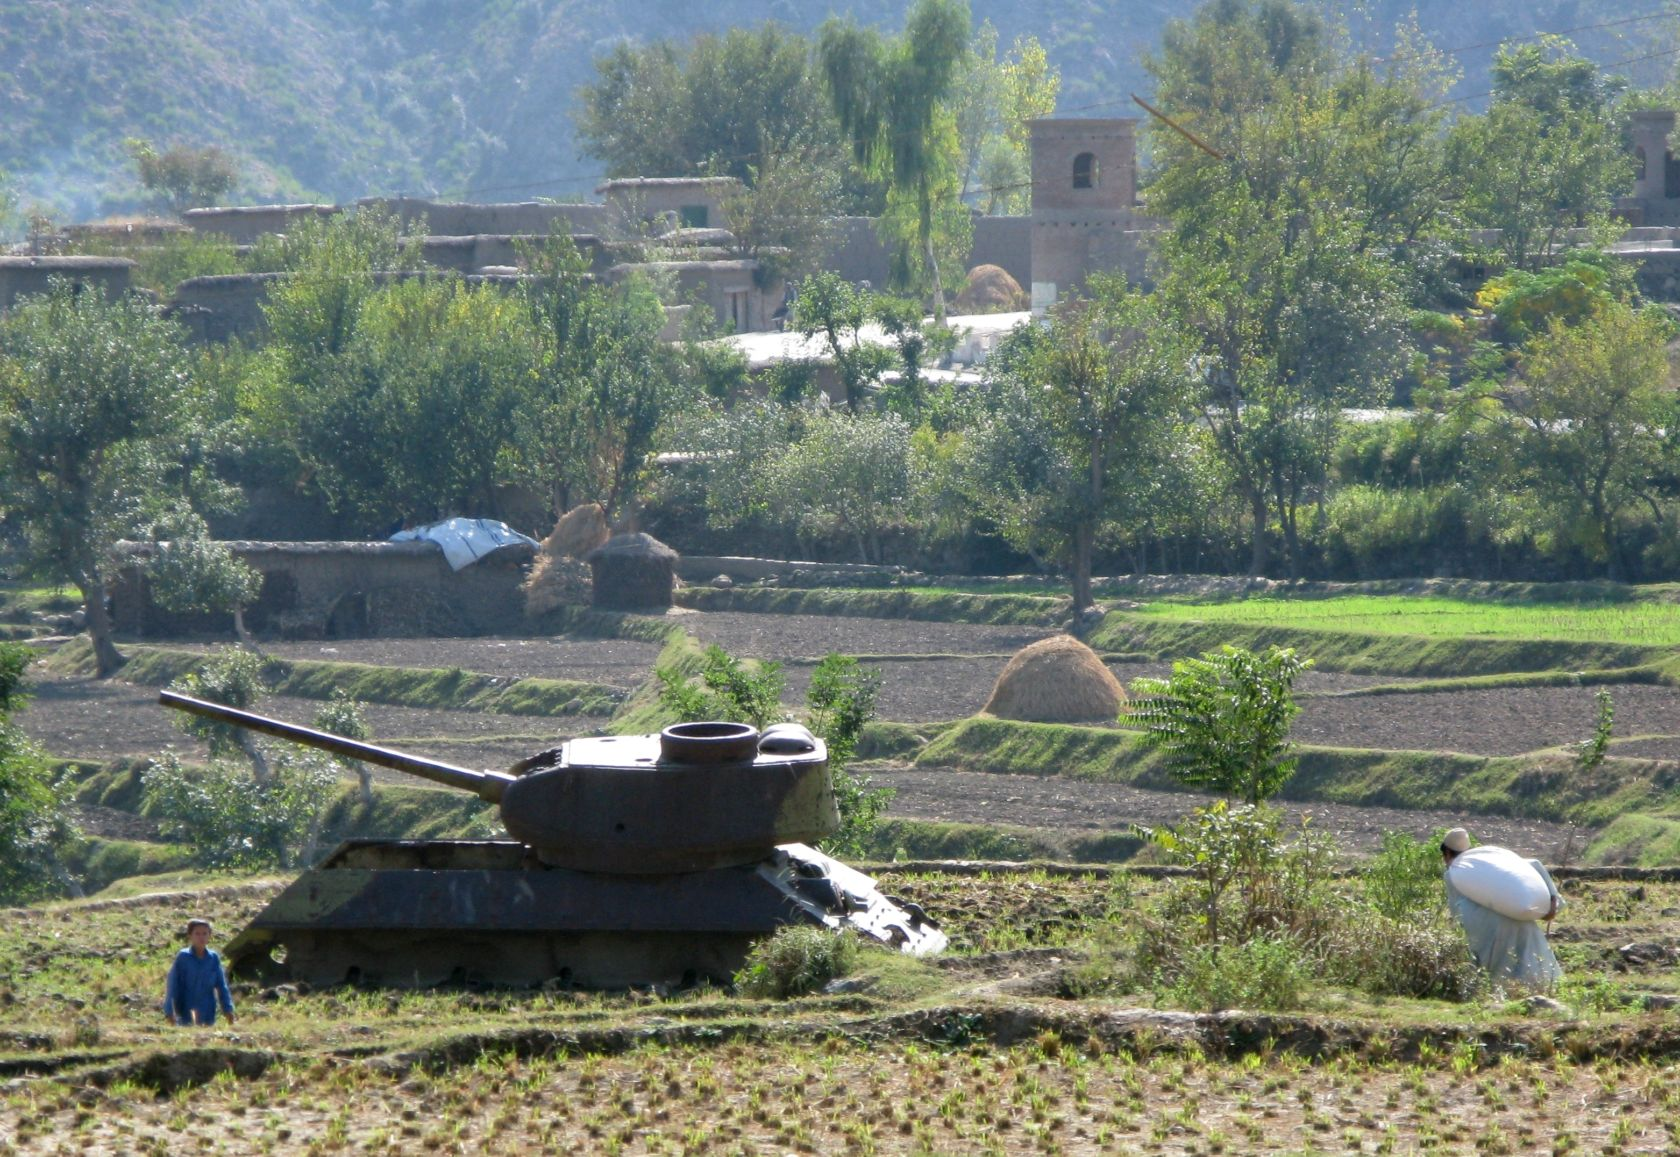 Russia, the USSR and Afghanistan, yesterday and today